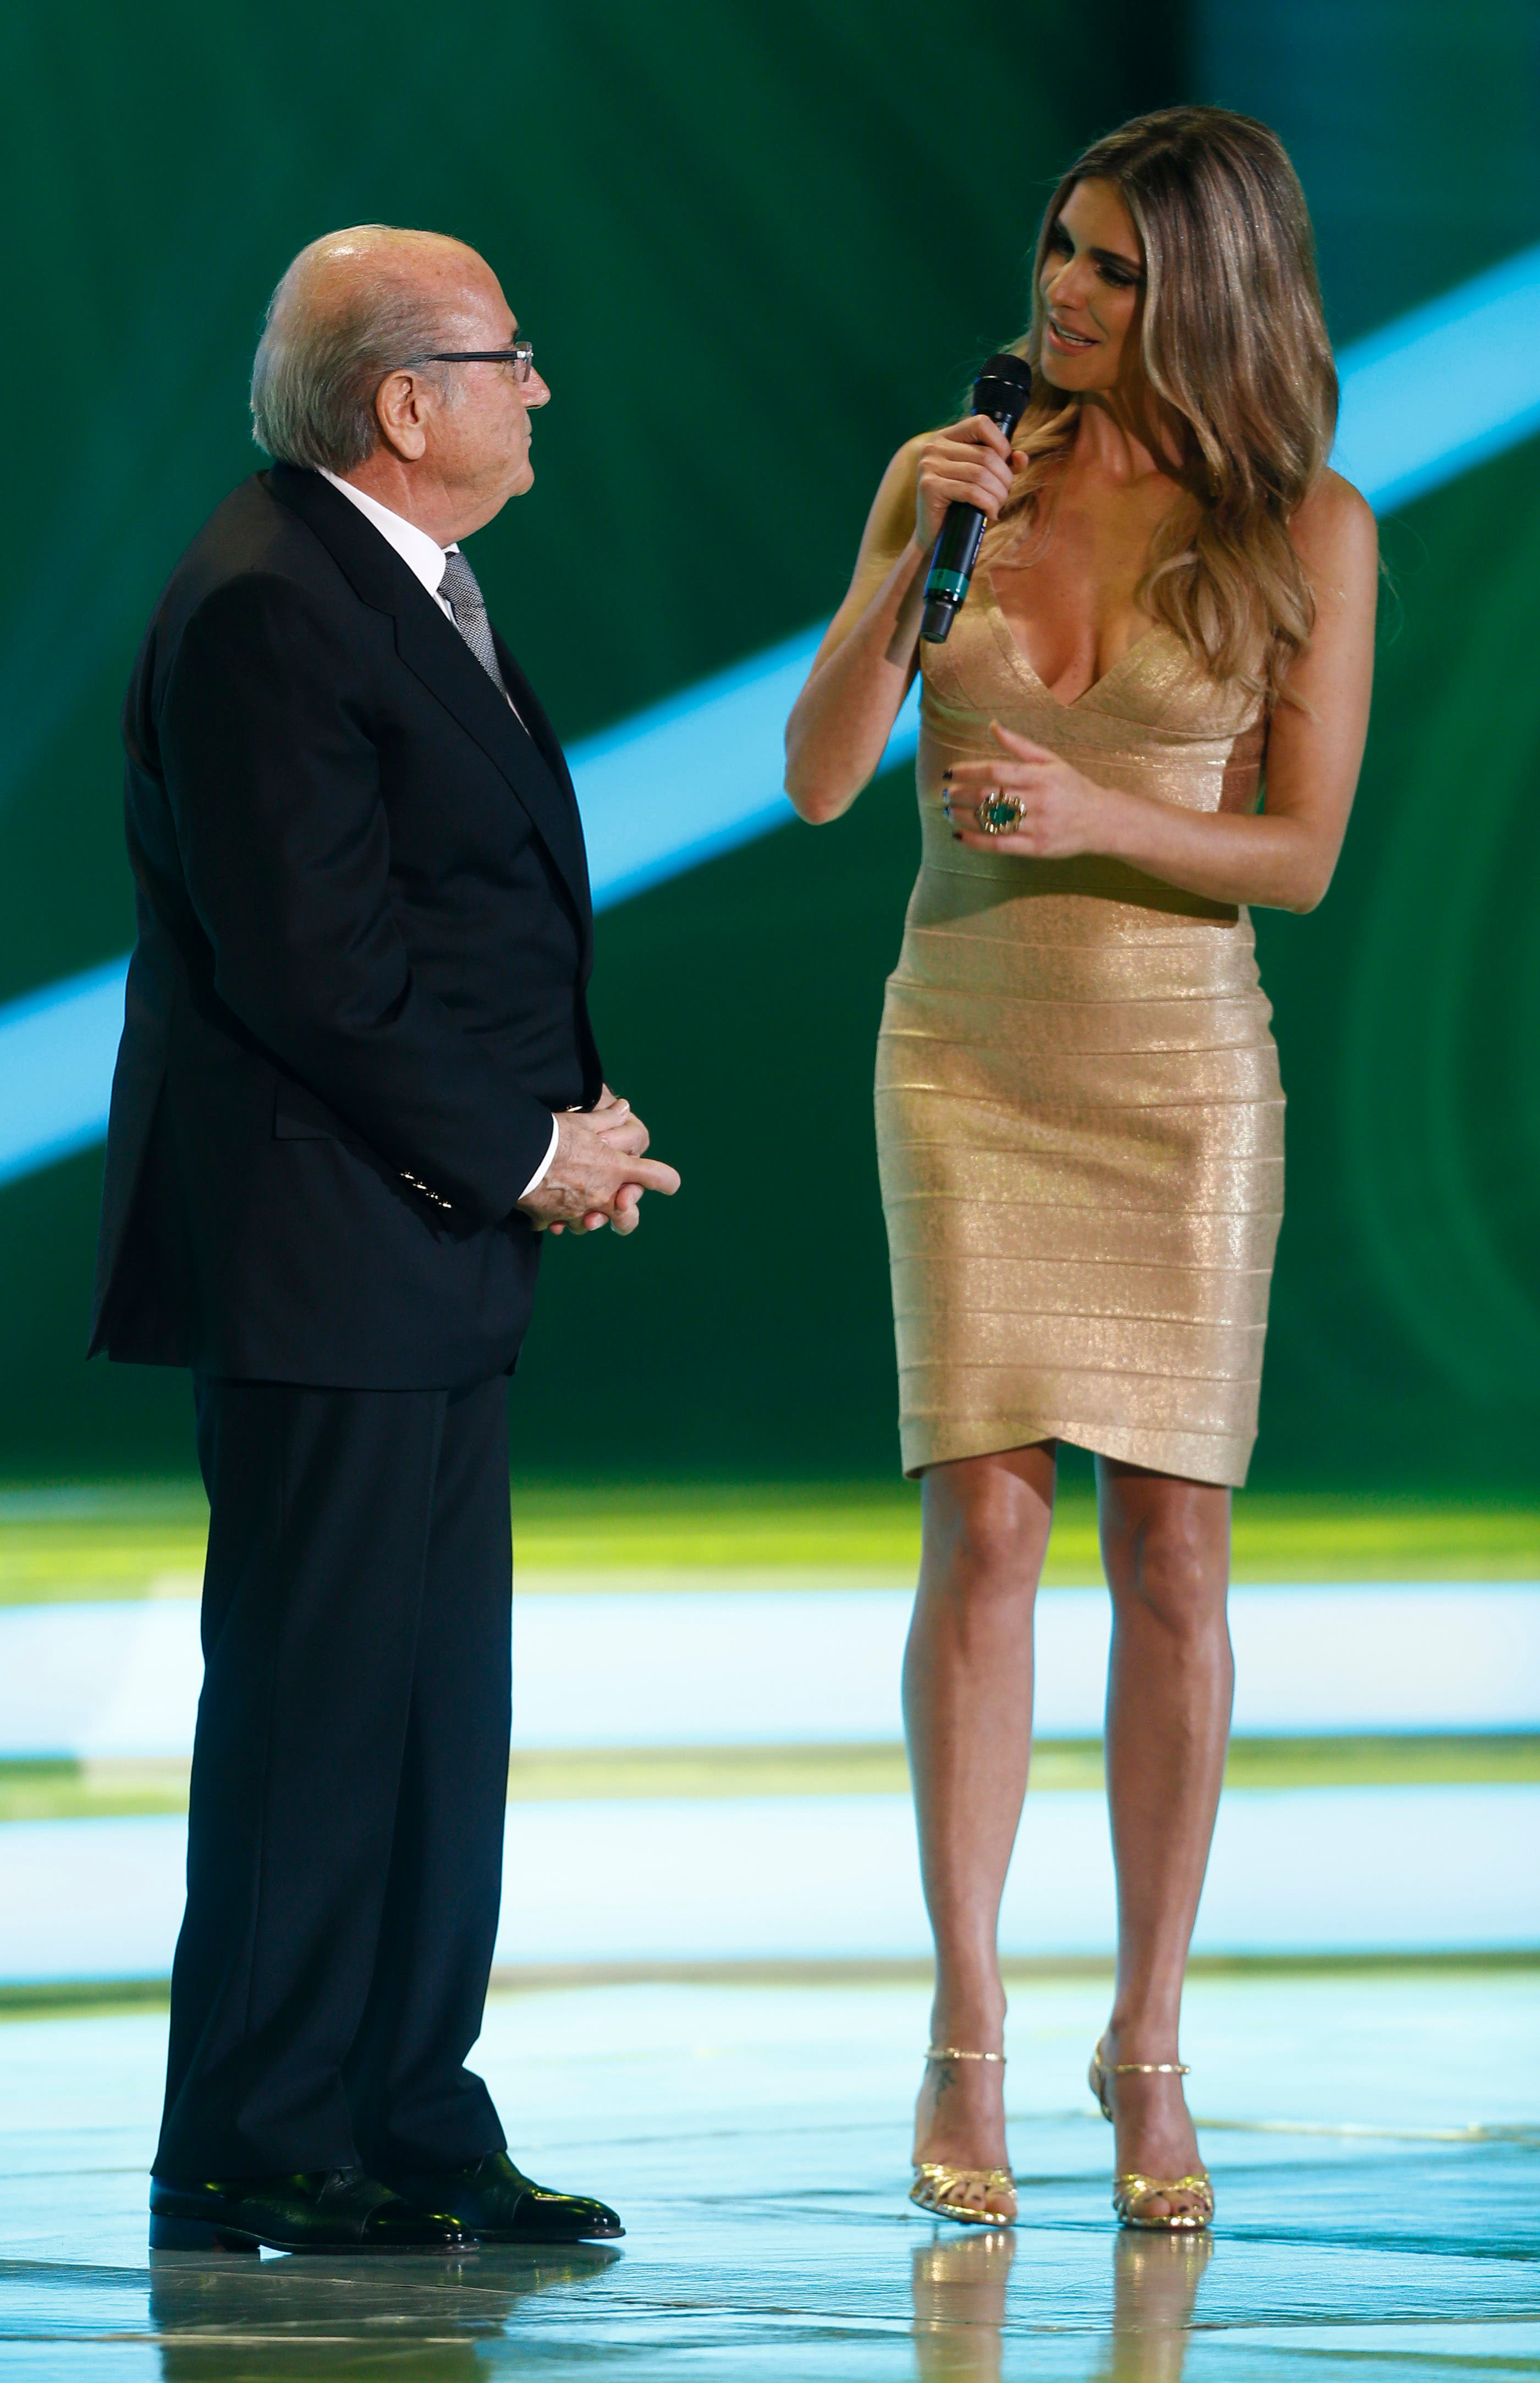 FIFA President Joseph Blatter is interviewed by Brazilian actress Fernanda Lima, right, during the draw ceremony for the 2014 soccer World Cup, Brazil, 2013. (AP)